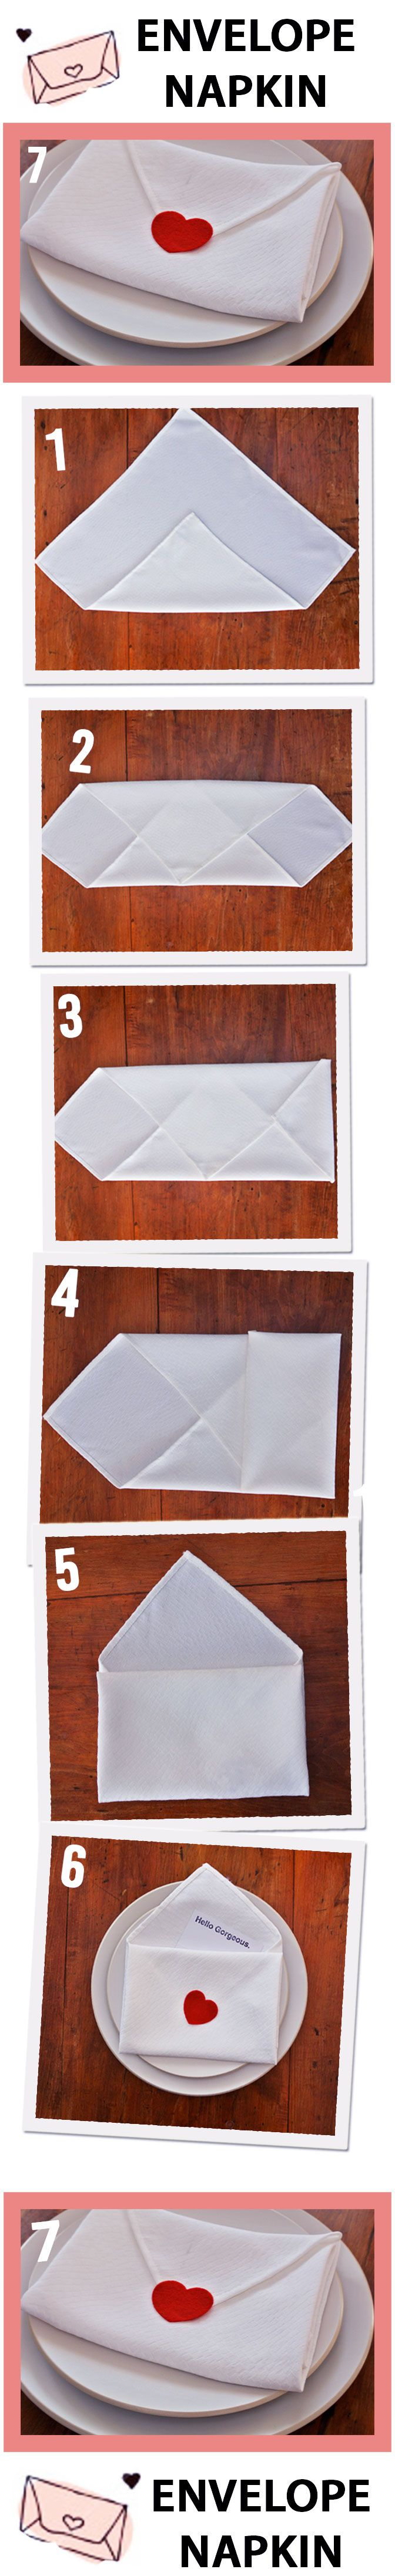 How to fold a napkin the romantic way (click for more cute ways)